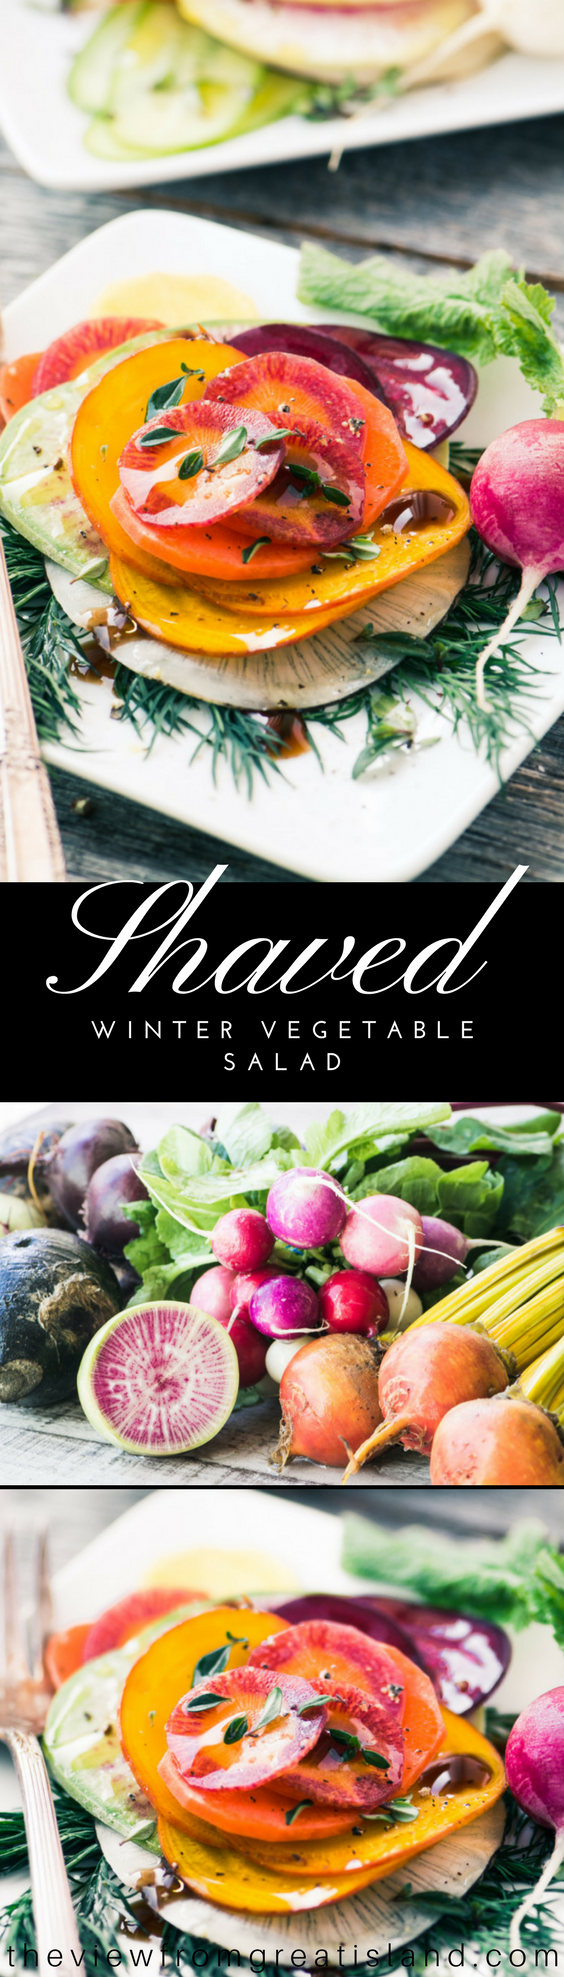 Shaved Winter Vegetable Salad ~ Paper thin rounds of winter root veggies are stacked and then lightly dressed with olive oil and a balsamic glaze. #salad #wintersalad #shavedsalad #rootvegetables #carrots #turnips #beets #rainbowcarrots #carrotsalad #healthysidedish #Thanksgivingsidedish #Christmassidedish #holidaysidedish #holidaysalad #glutenfree #paleo #vegan #vegetarian #whole30 #weightwatchers